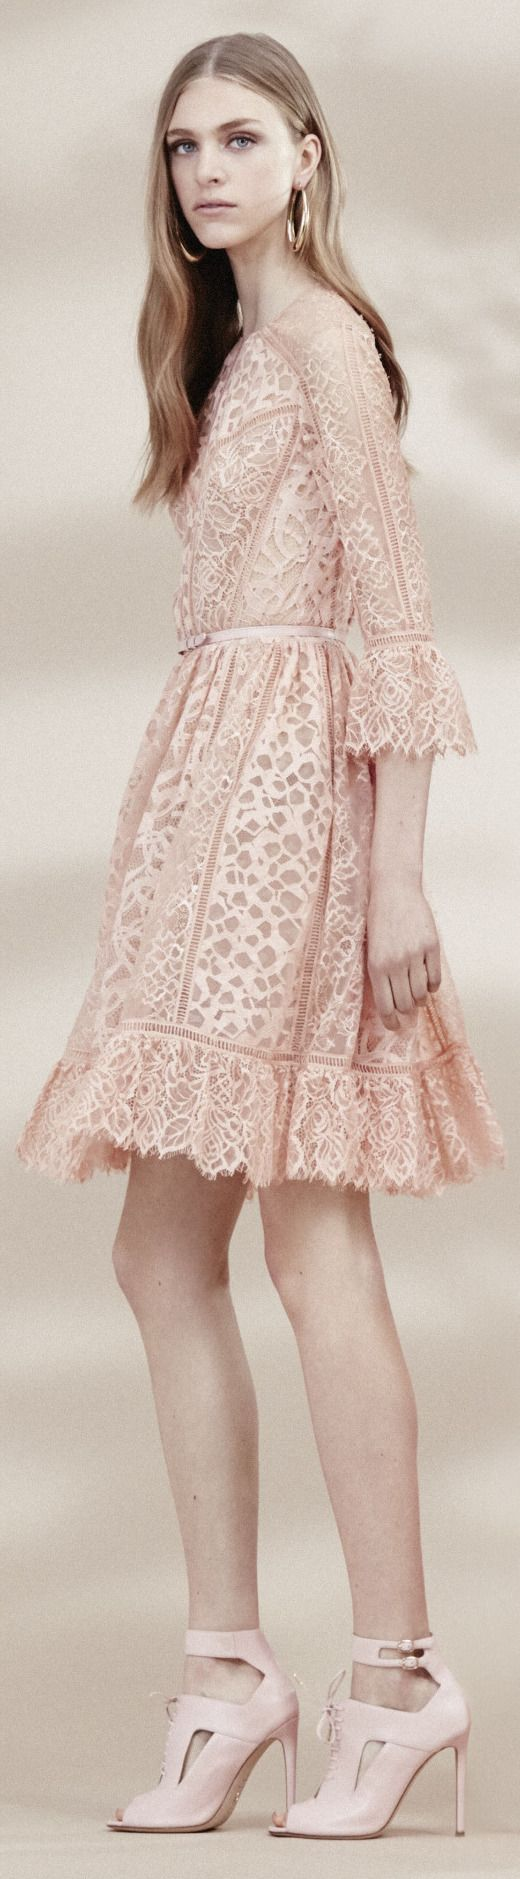 736 best images about peach weddings on pinterest blush for Elie saab blush wedding dress